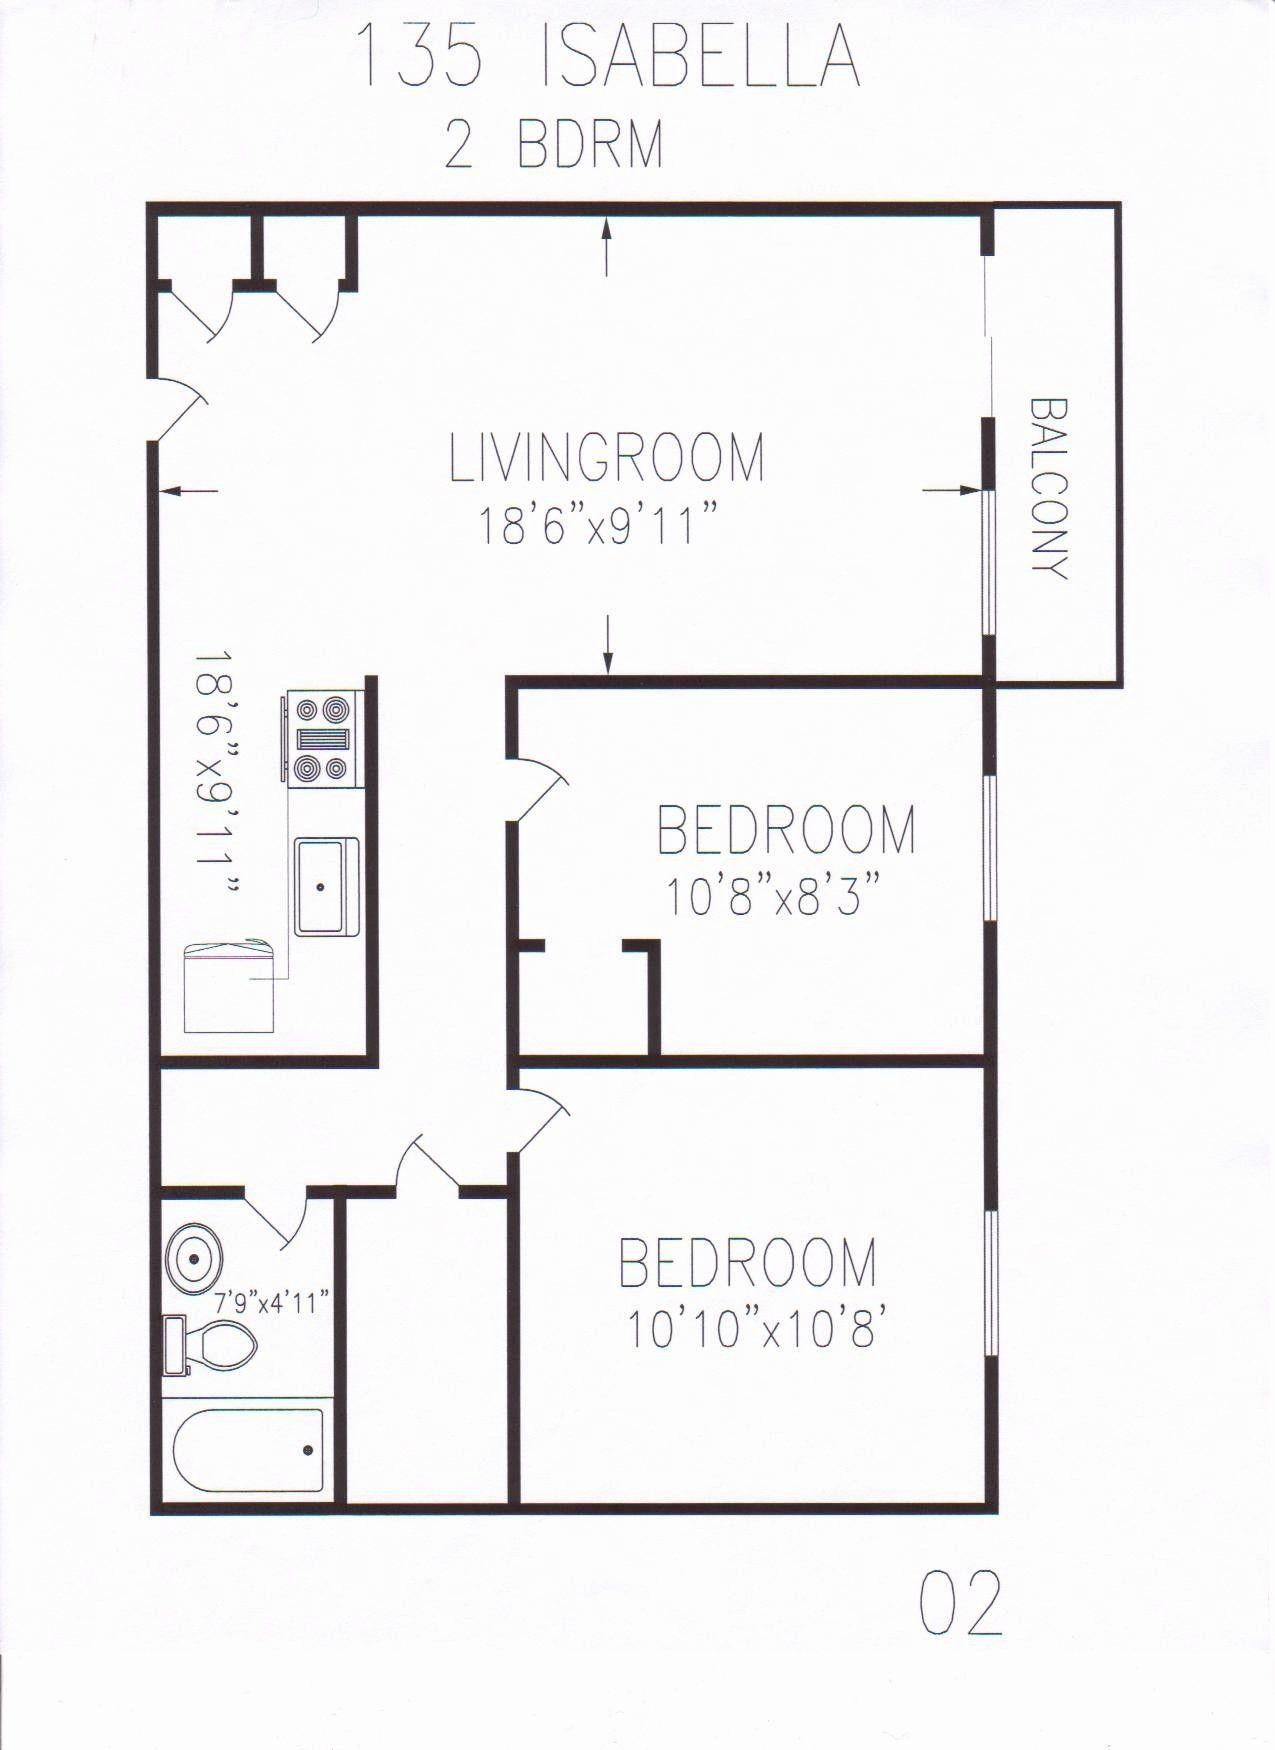 750 Sq Foot House Plans Awesome 5000 Square Foot House Floor Plans In 2020 Small House Plans House Plans Square House Plans